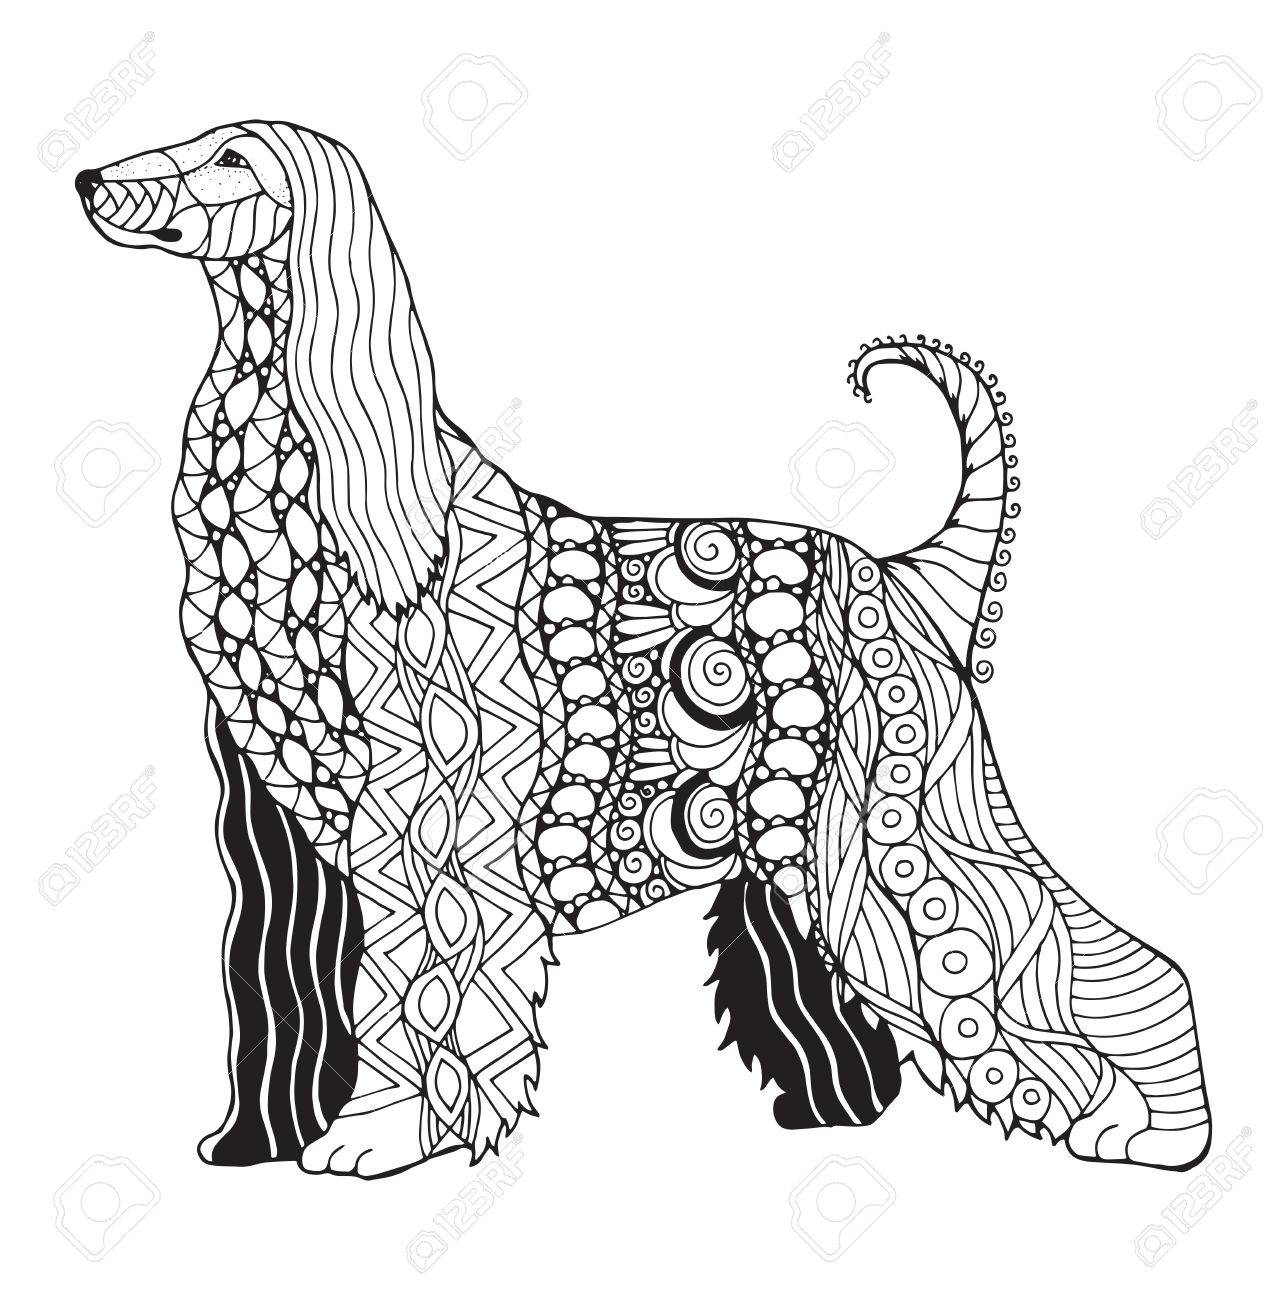 Afghan hound dog zentangle stylized, vector, illustration, freehand pencil, pattern. Zen art. Black and white illustration on white background. Adult anti-stress coloring book. Print for t-shirts. - 80715719